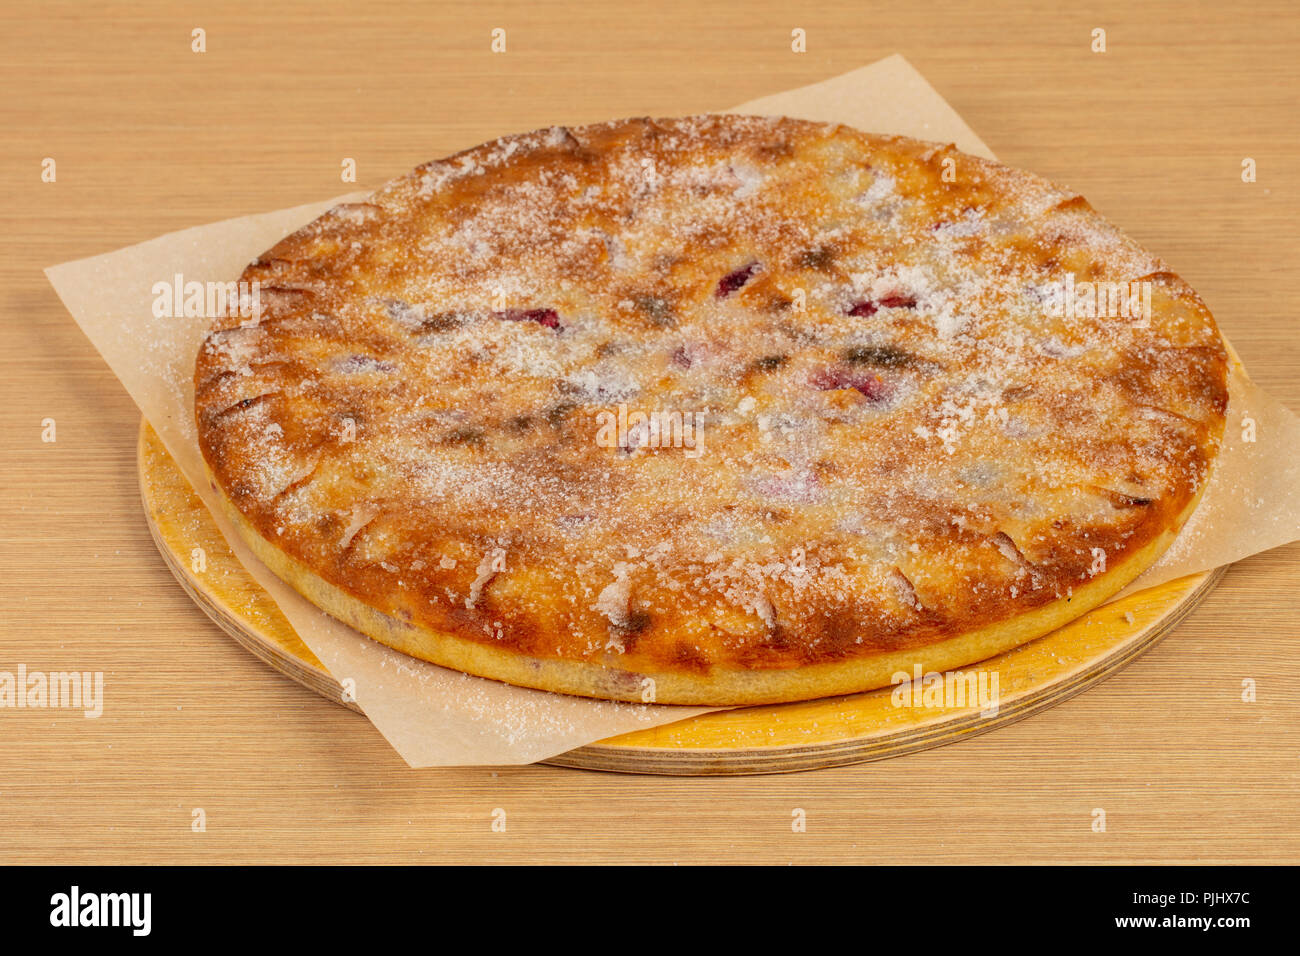 How to cook Ossetian pie at home